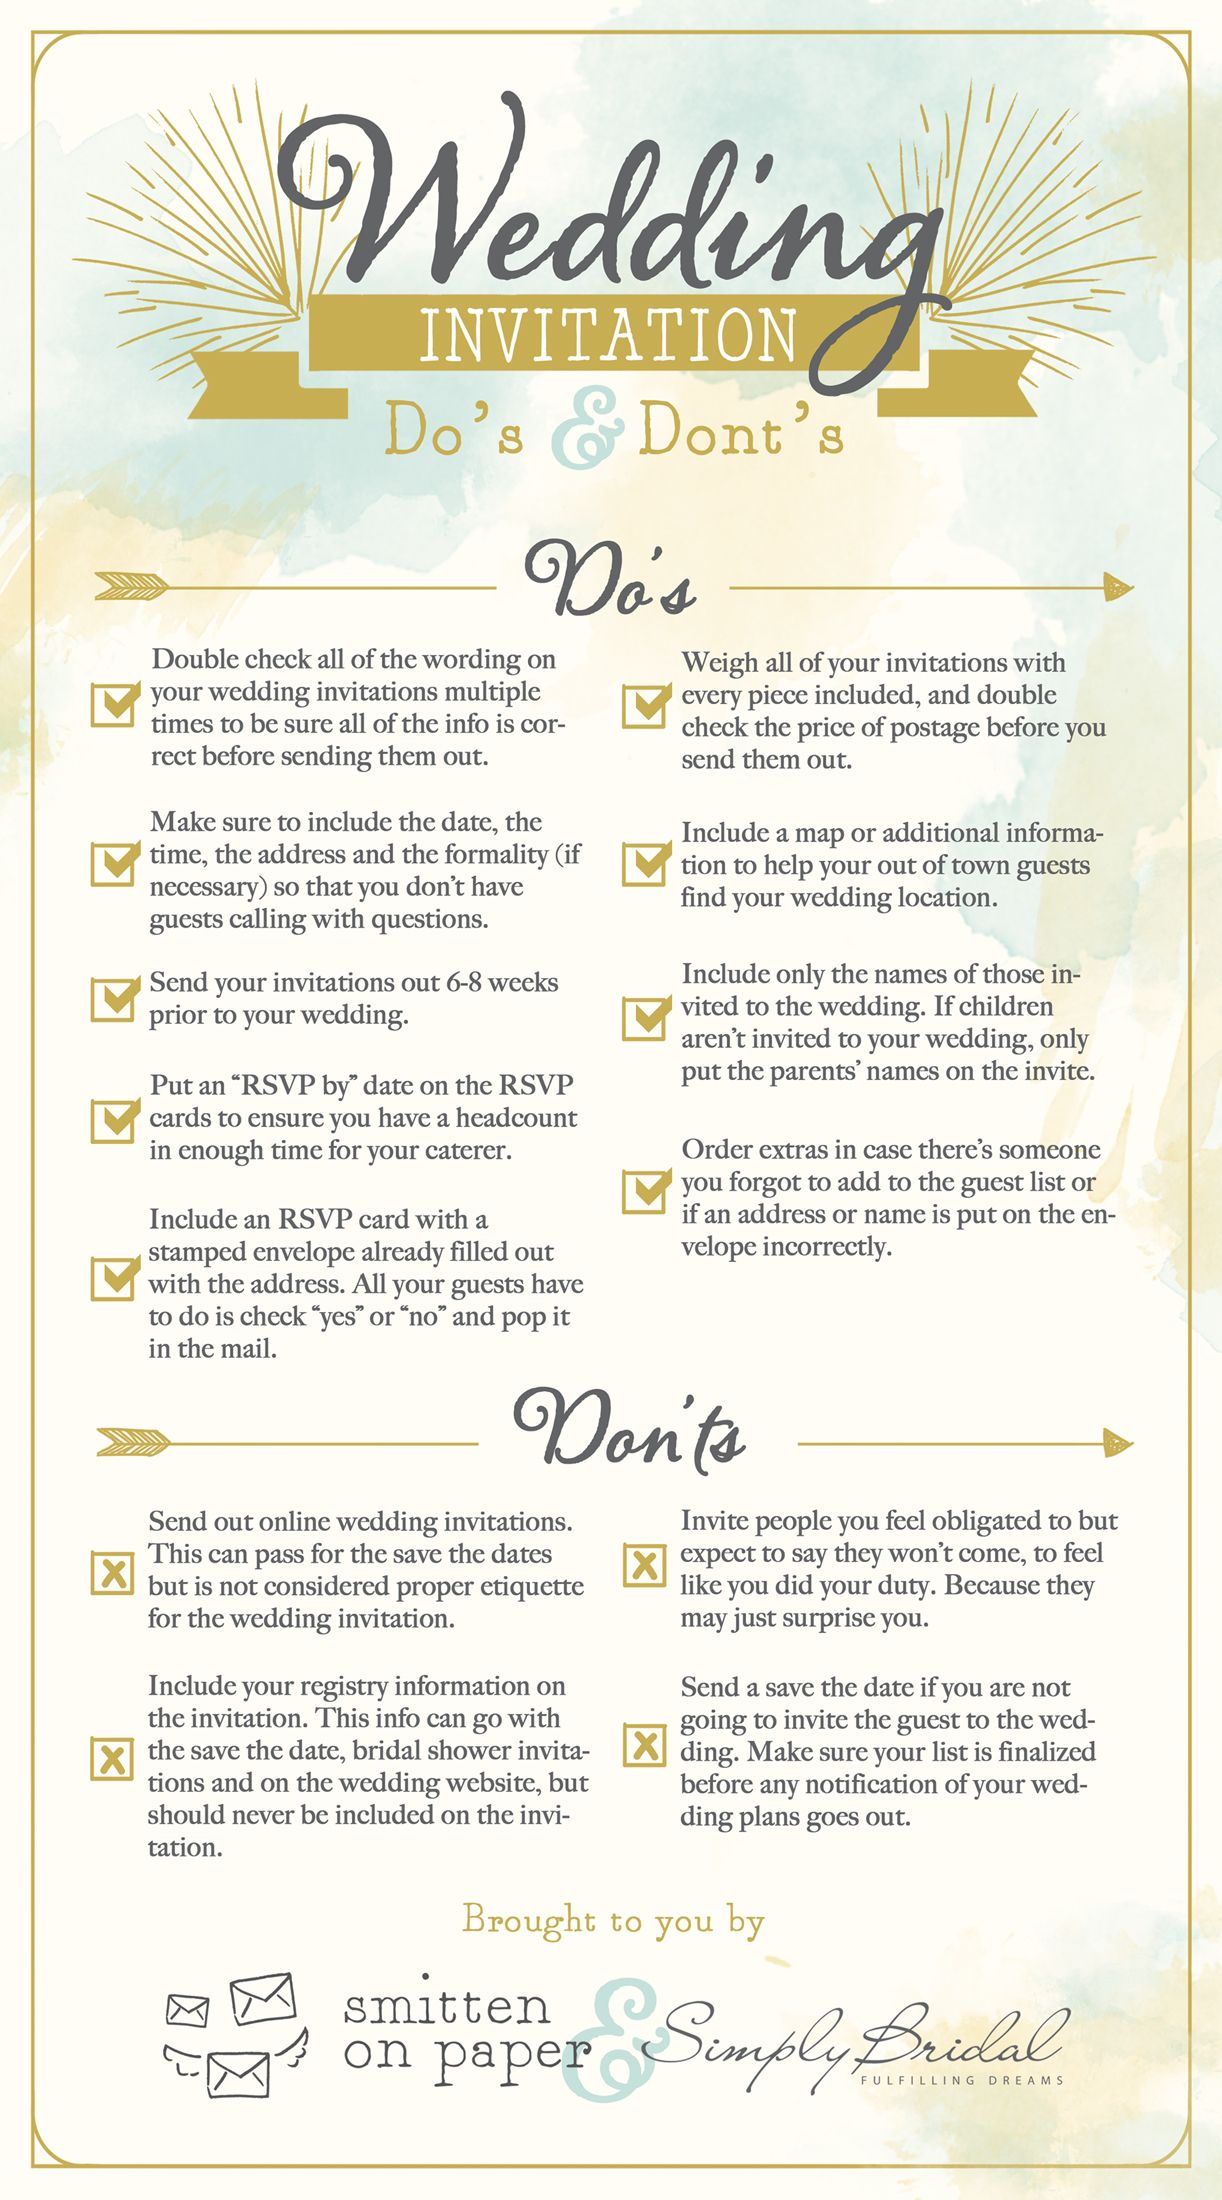 6 Super Helpful Wedding Invitation Checklists | Pinterest | Wedding ...